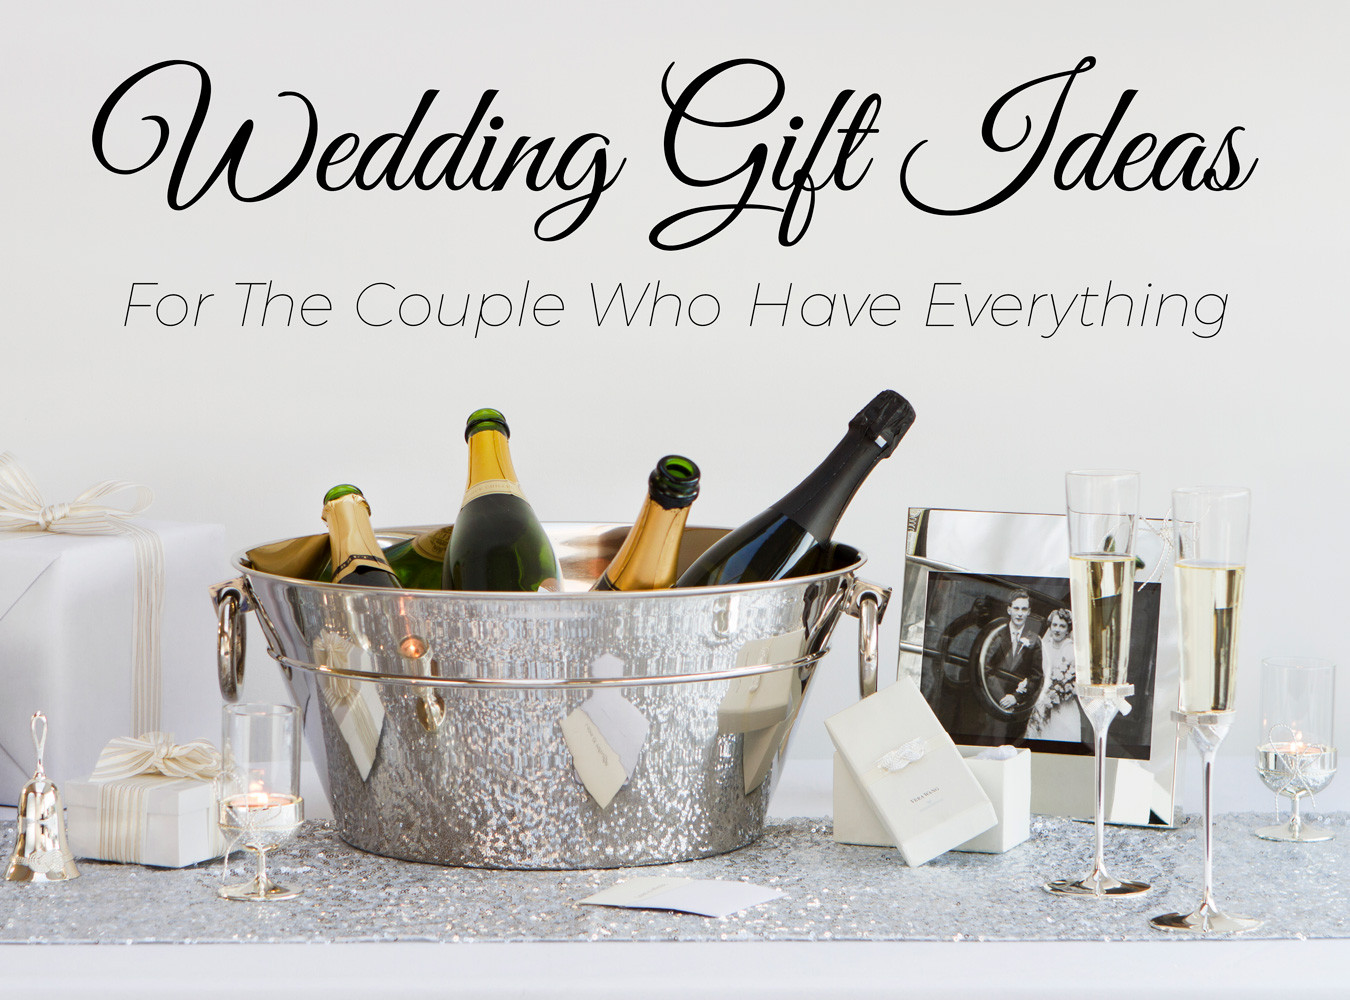 Wedding Gift Ideas For Older Couples Second Marriage  5 Wedding Gift Ideas for the Couple Who Have Everything